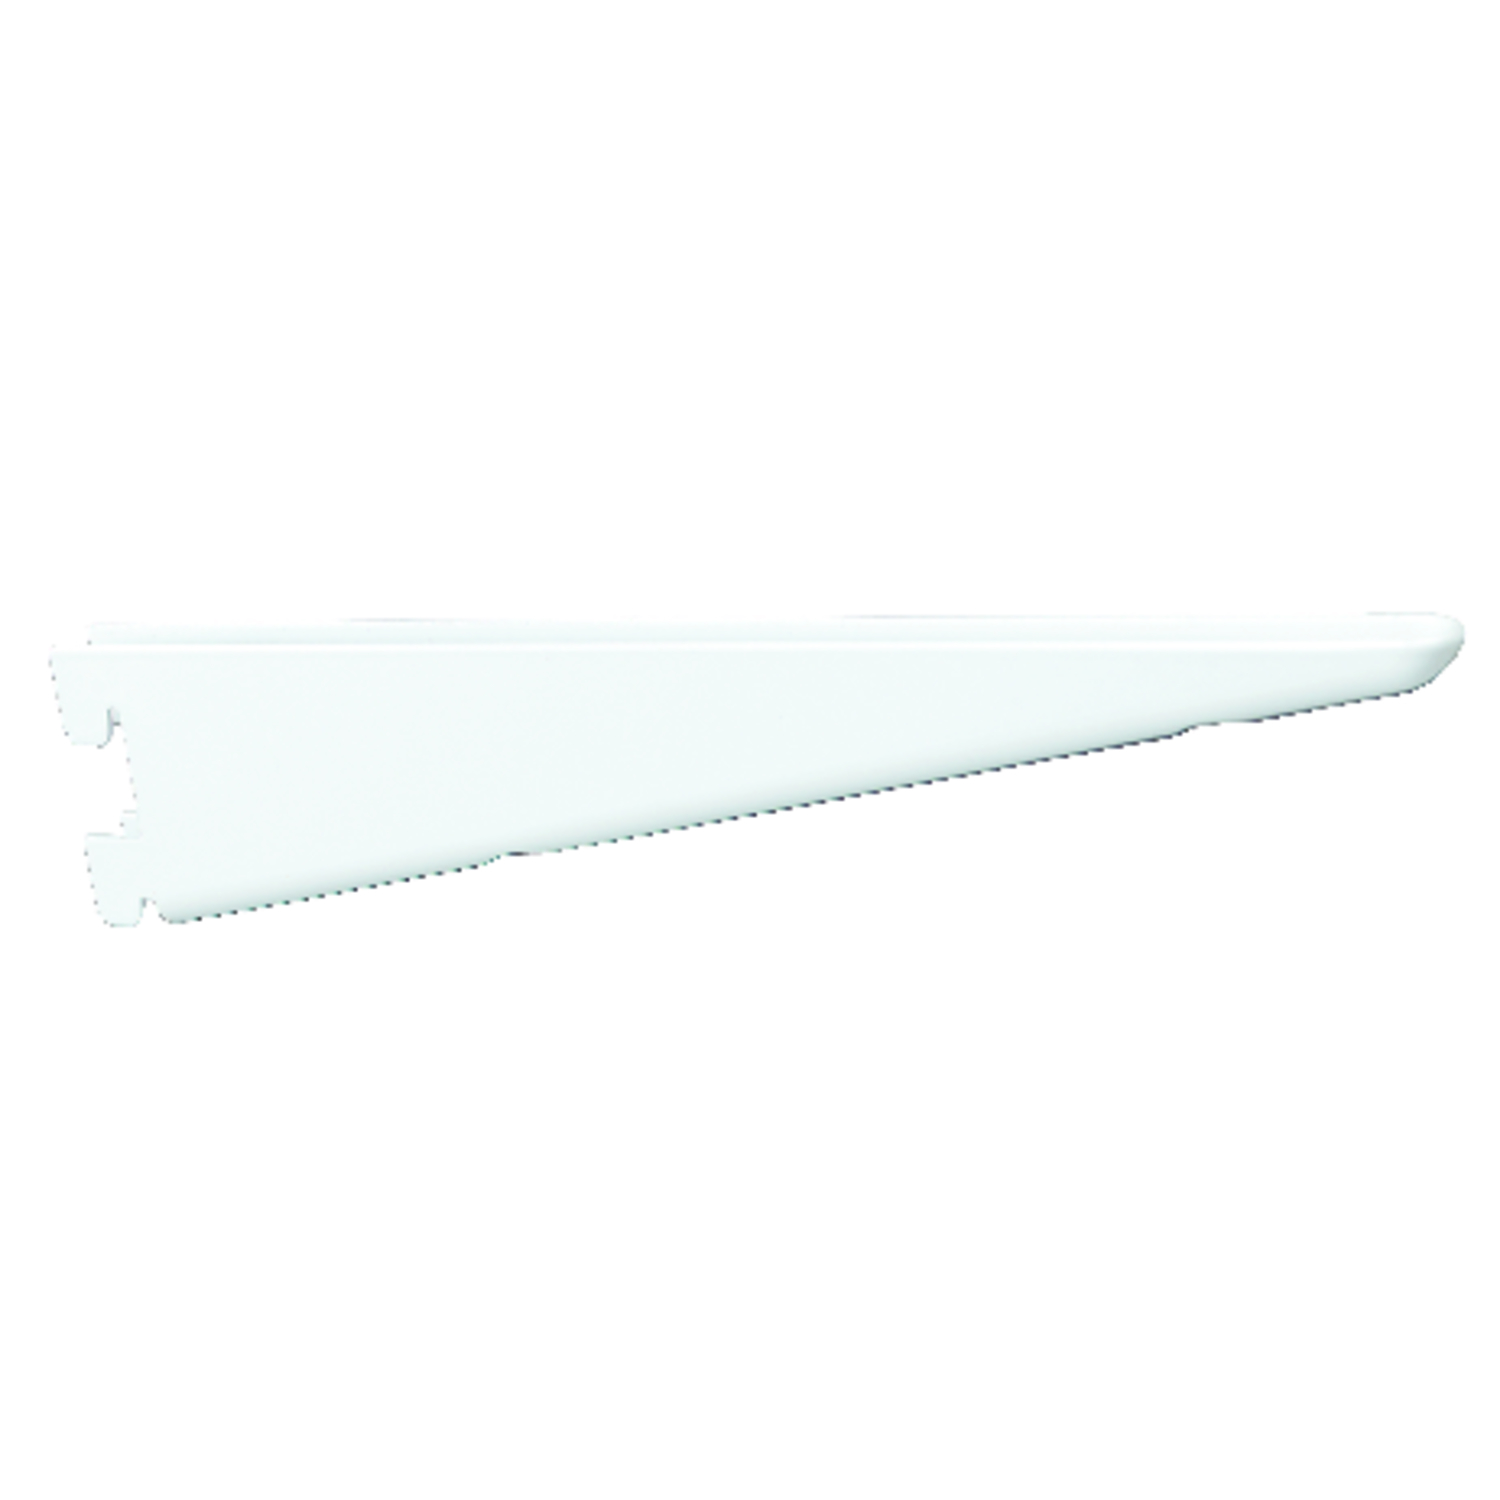 Knape & Vogt  White  White  Steel  16 Ga. 182 Series  Bracket  1.93 in. H x 0.53 in. W x 12-1/2 in.